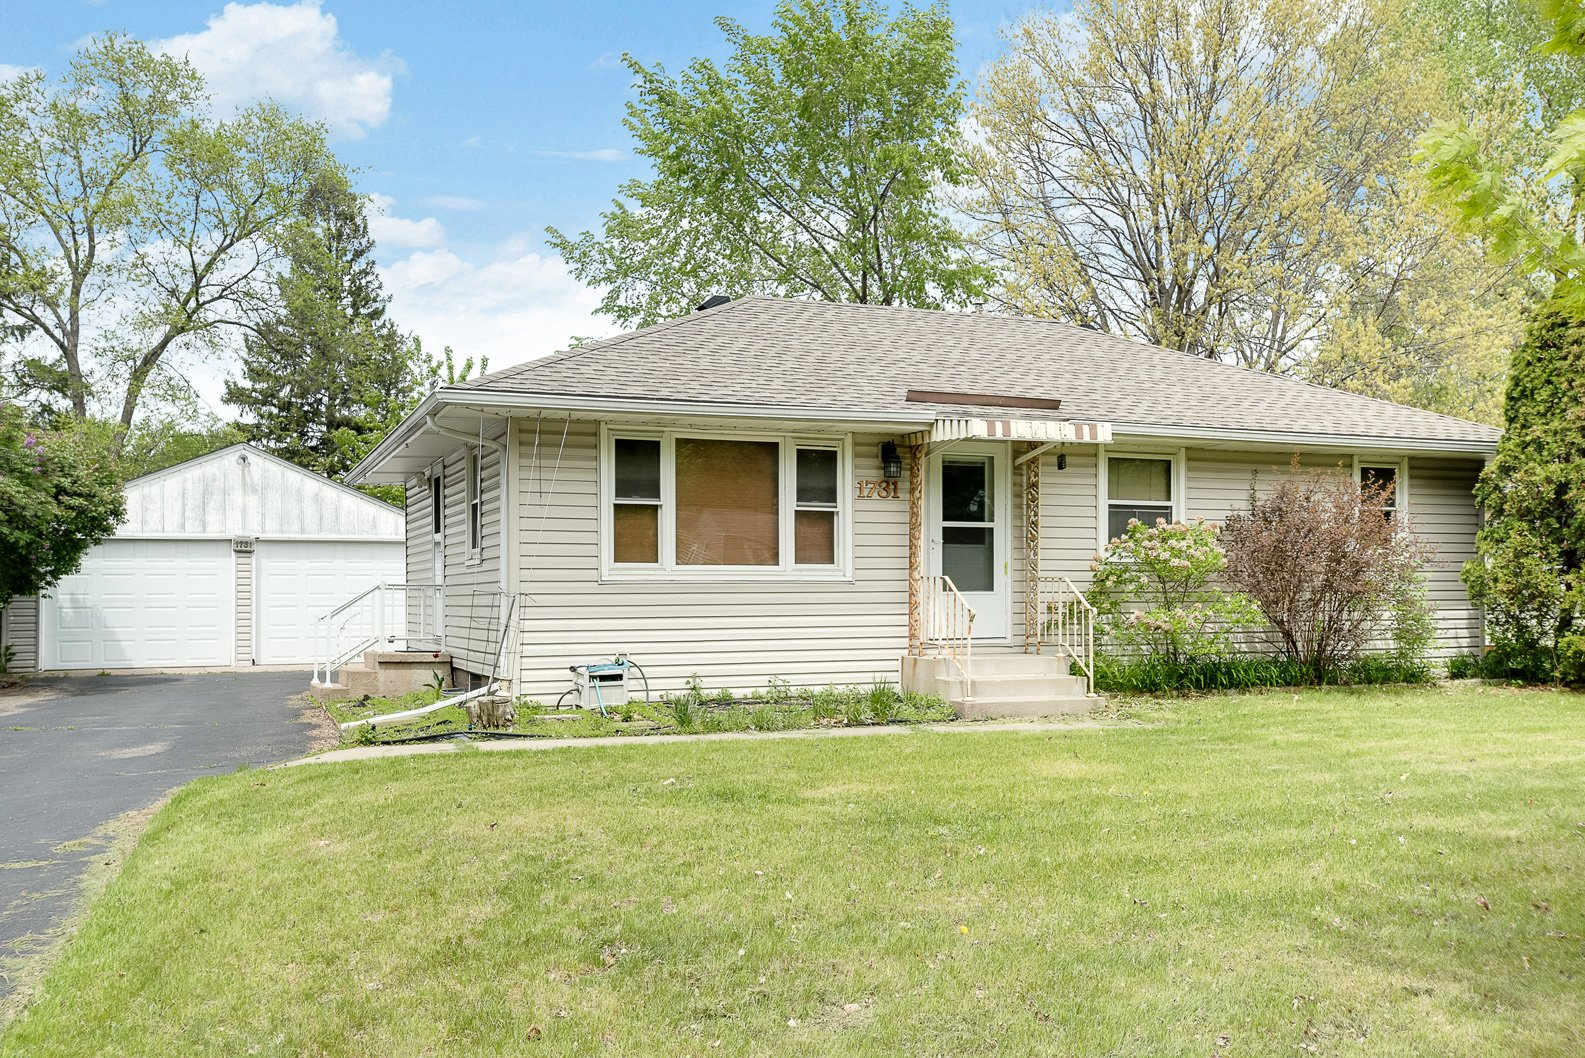 Shoreview rambler SOLD – 1731 Hillview Road!